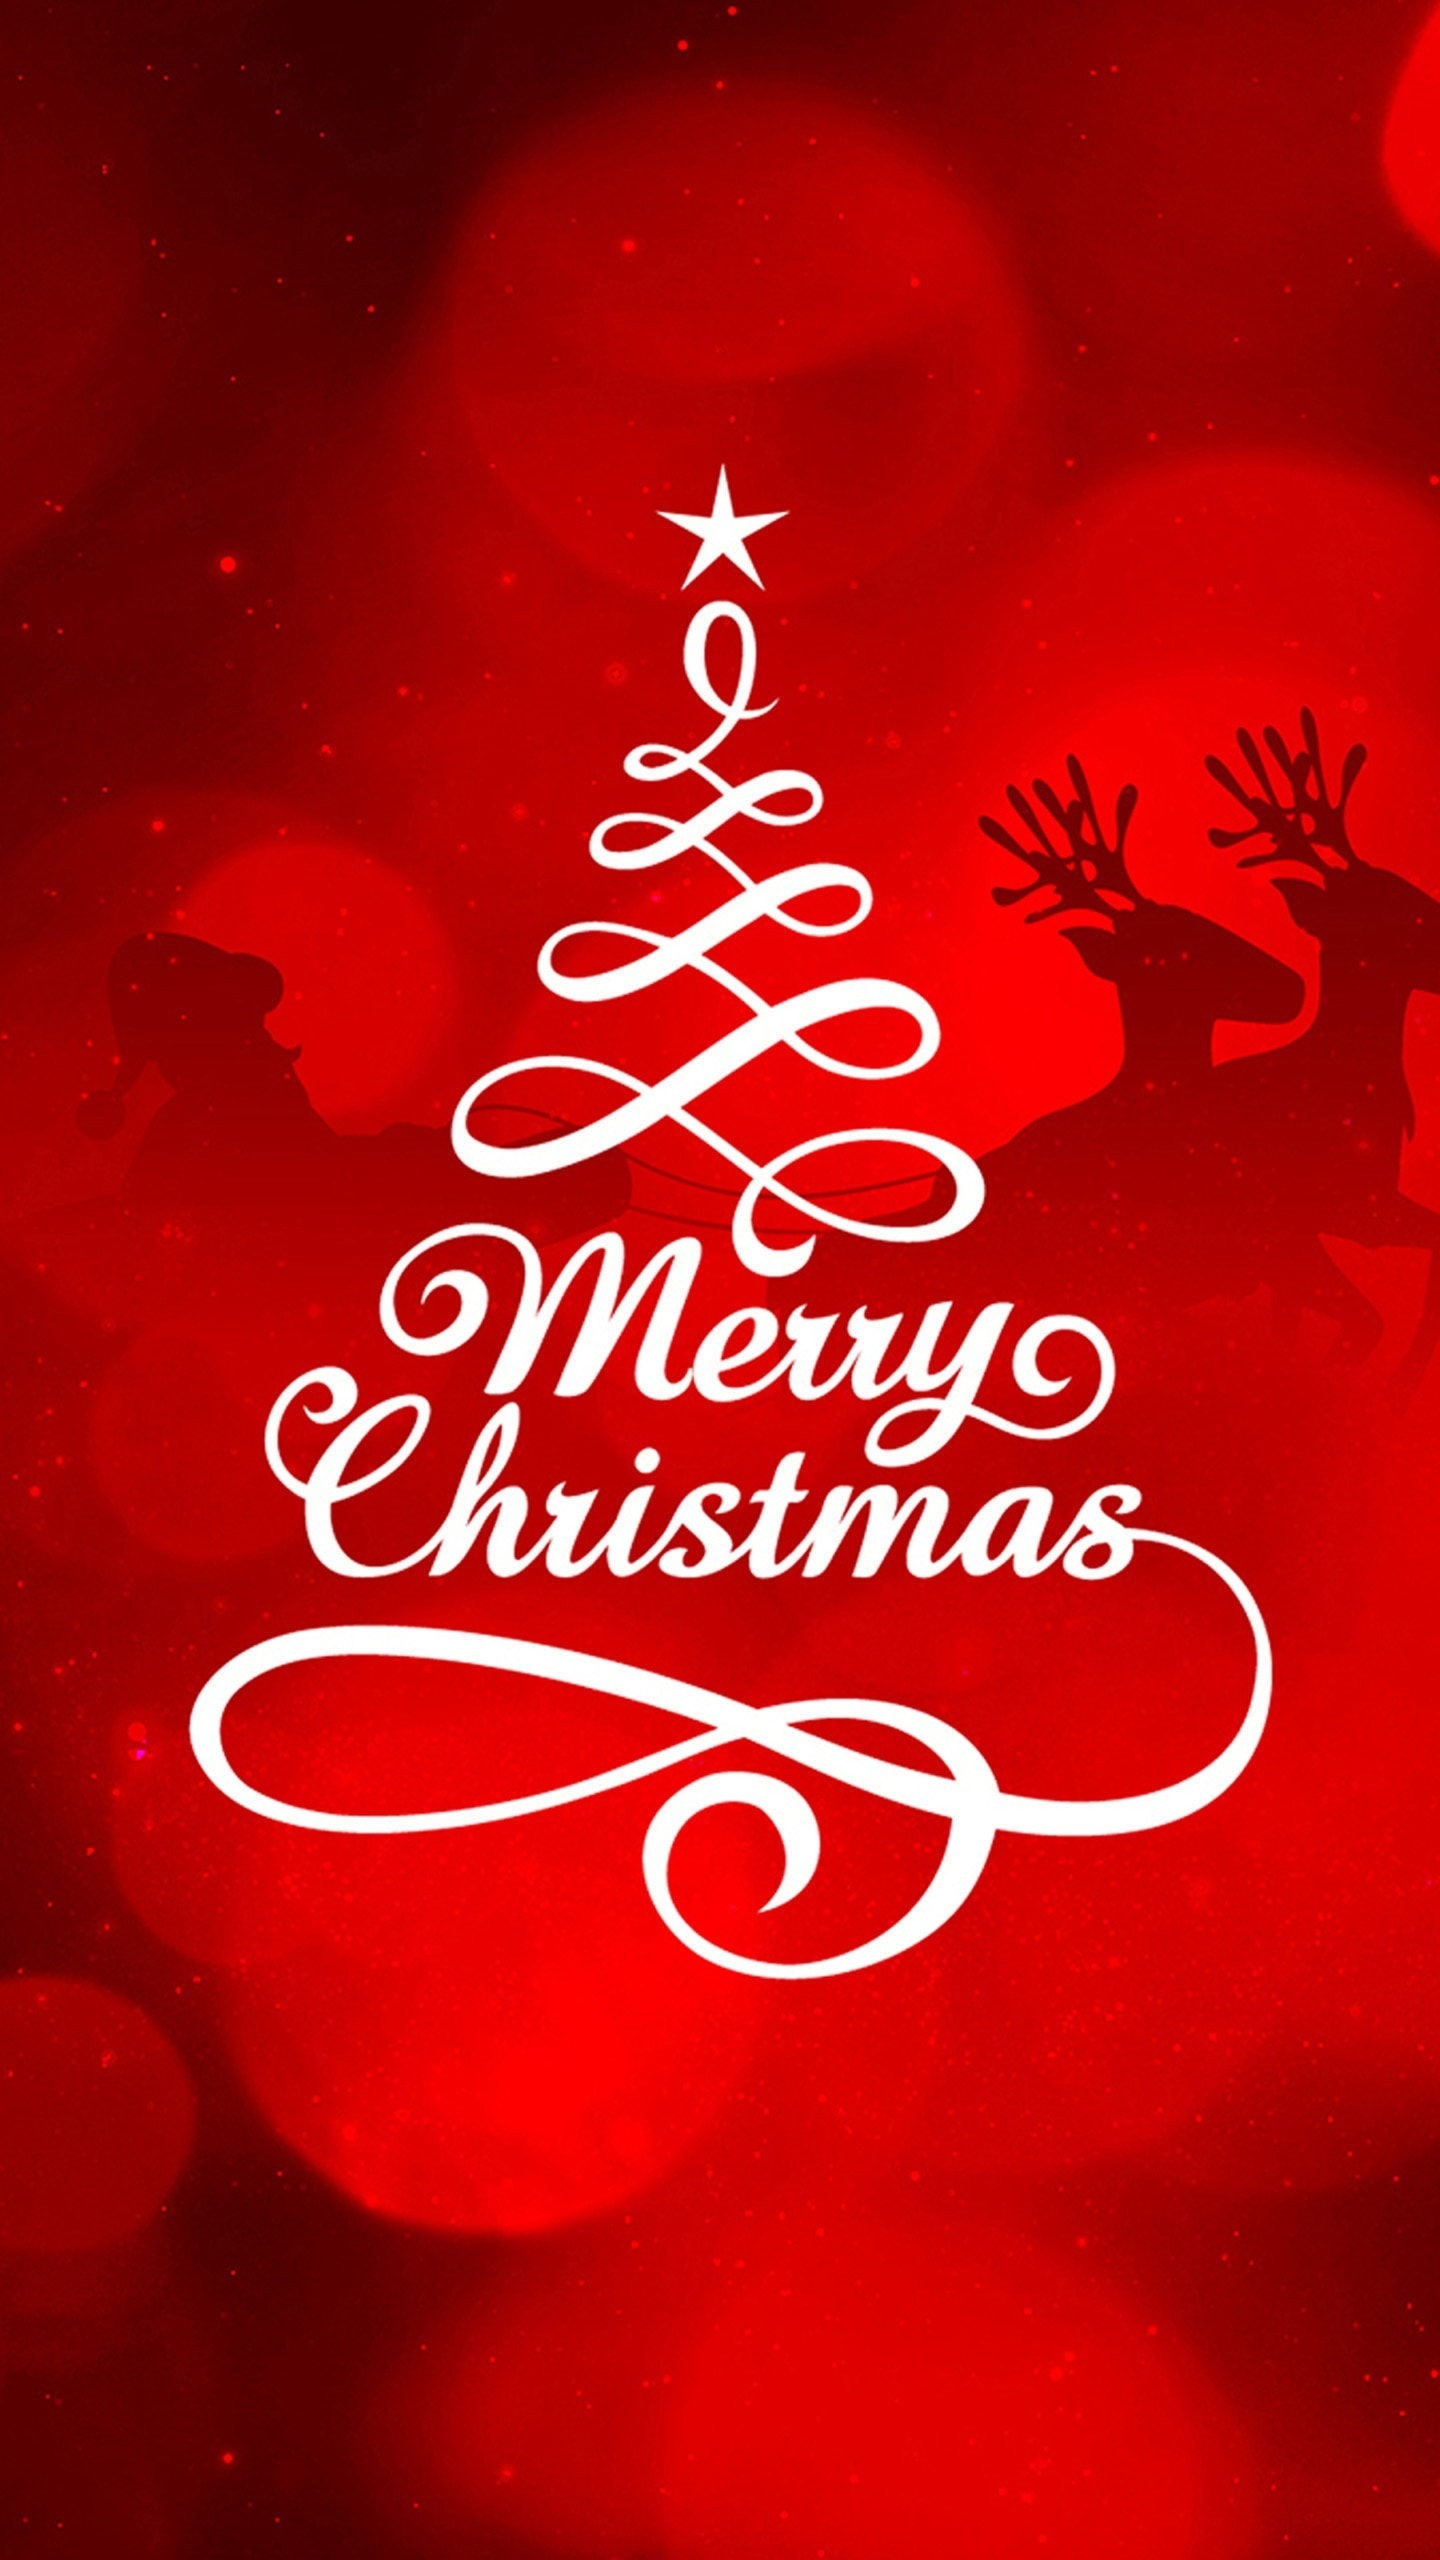 Merry Christmas Wallpapers Kolpaper Awesome Free Hd Wallpapers